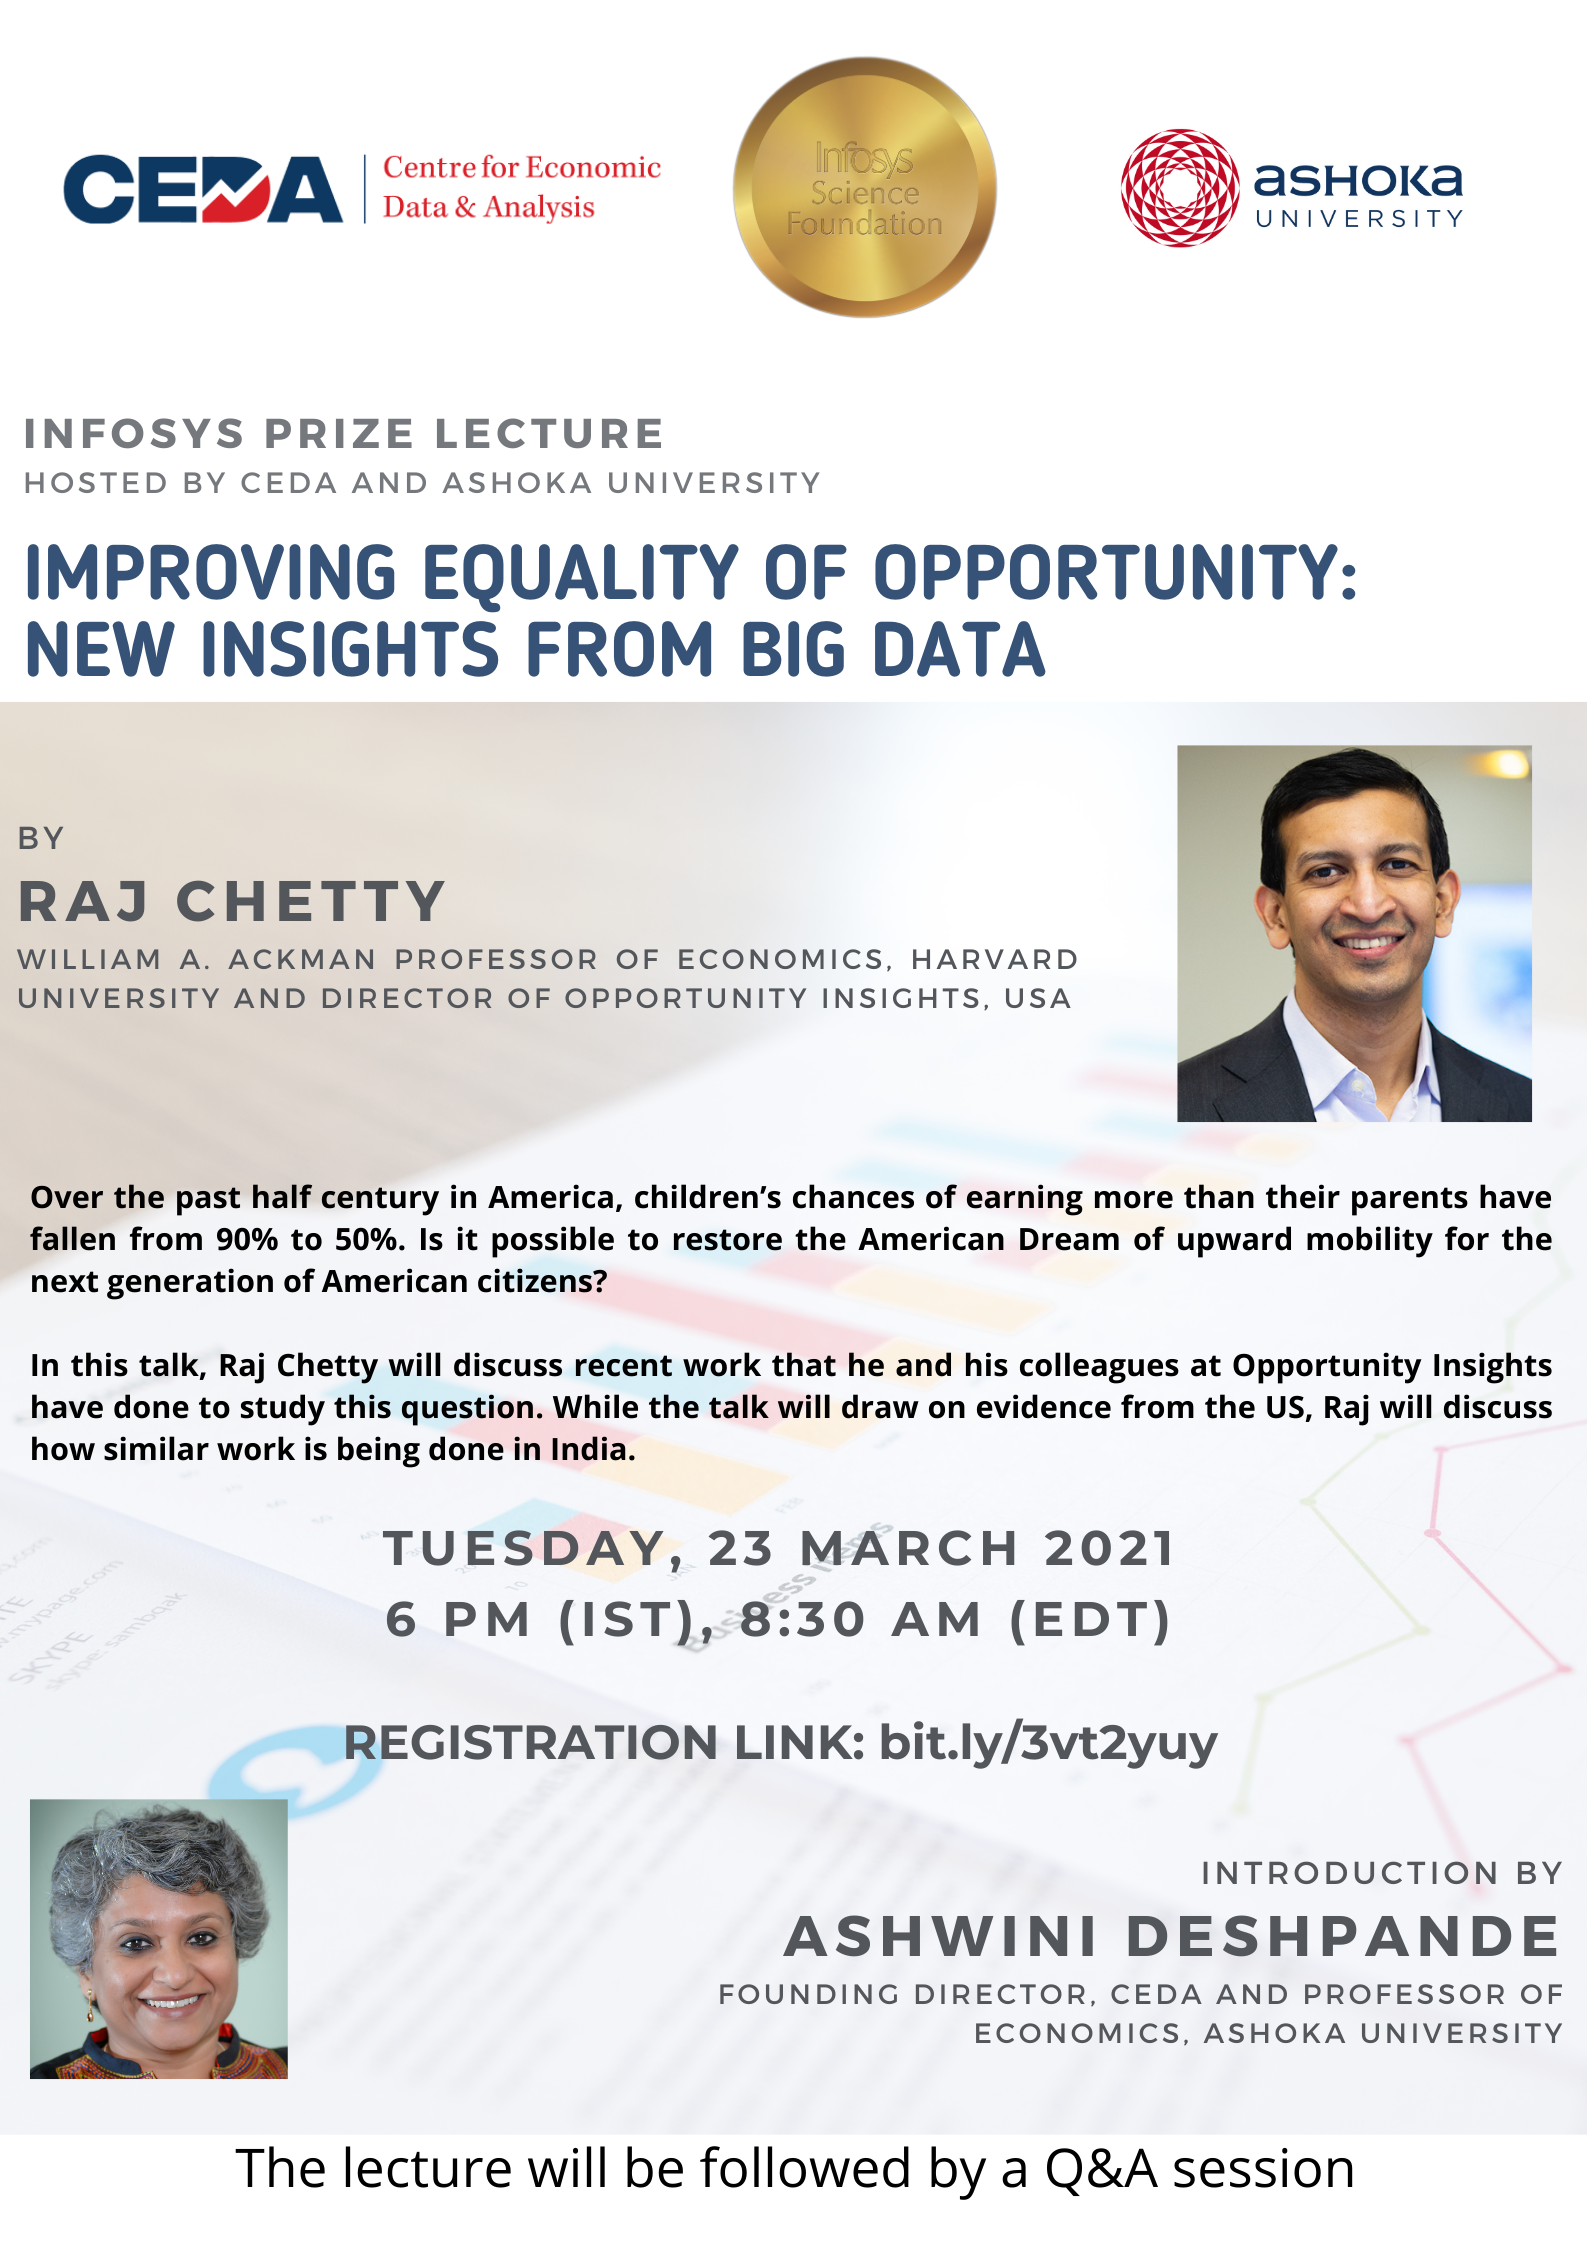 Improving Equality of Opportunity: New Insights from Big Data